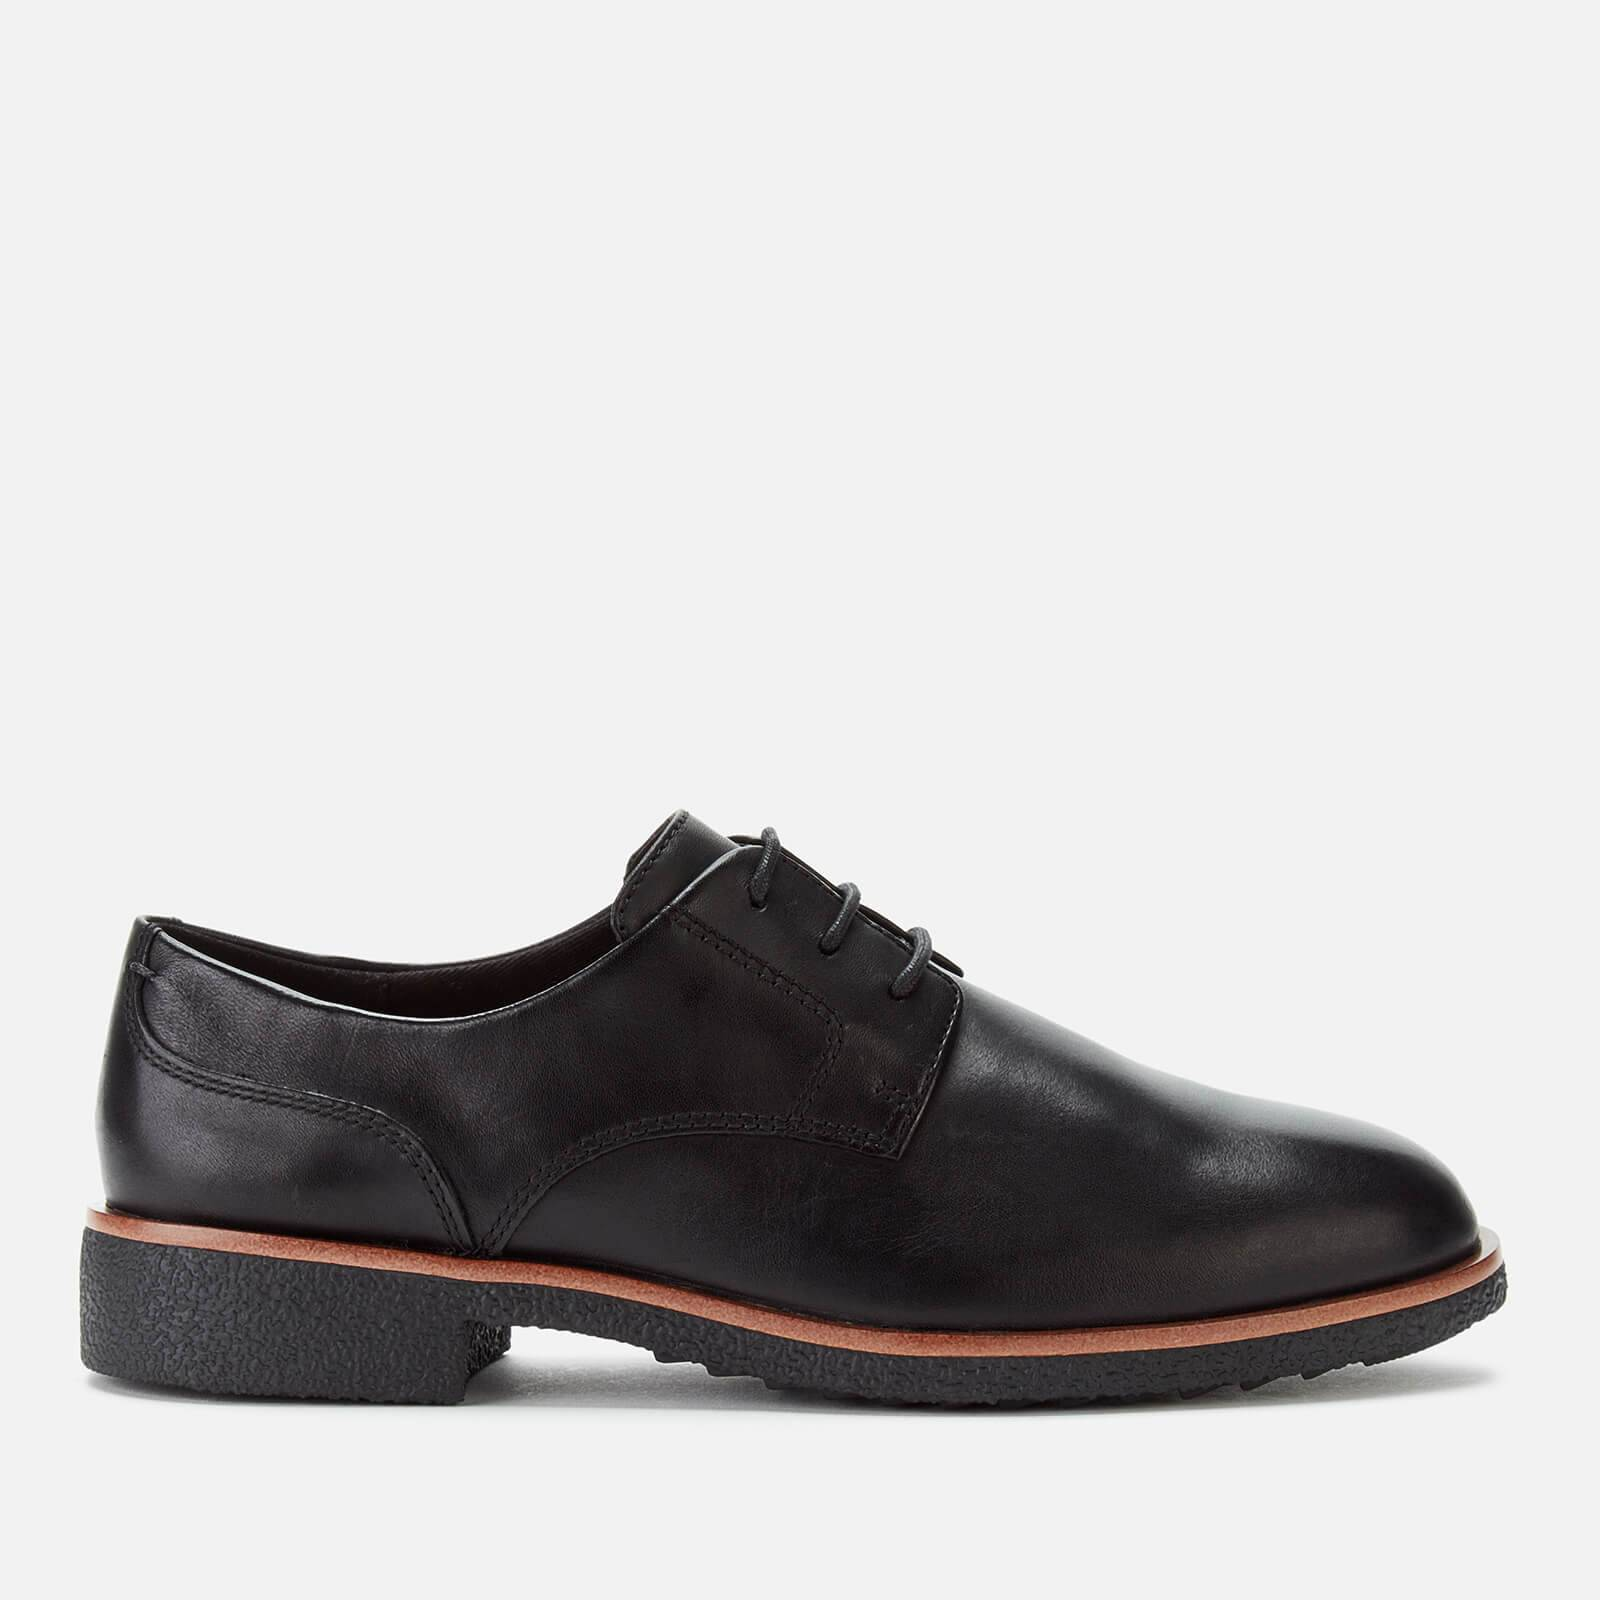 Clarks Women's Griffin Lane Leather Derby Shoes - Black - UK 7